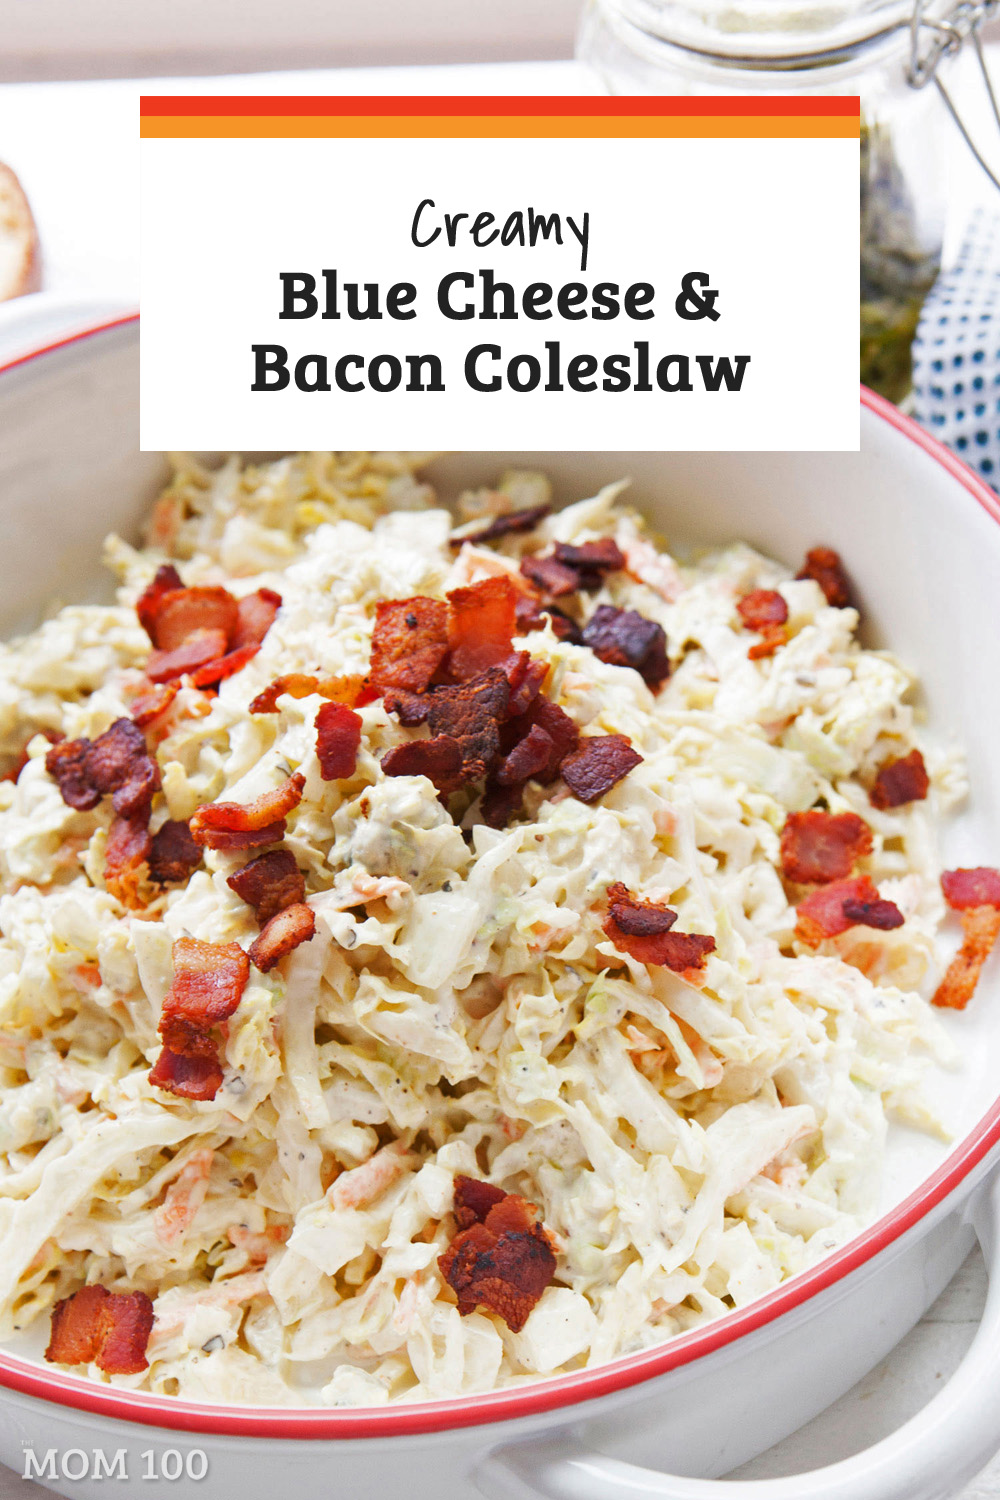 Creamy and rich, topped with crumbled bacon, this Creamy Blue Cheese and Bacon Coleslaw packs a lot of punch in term of flavor and texture. #summer #summerrecipe #coleslaw #sidedish